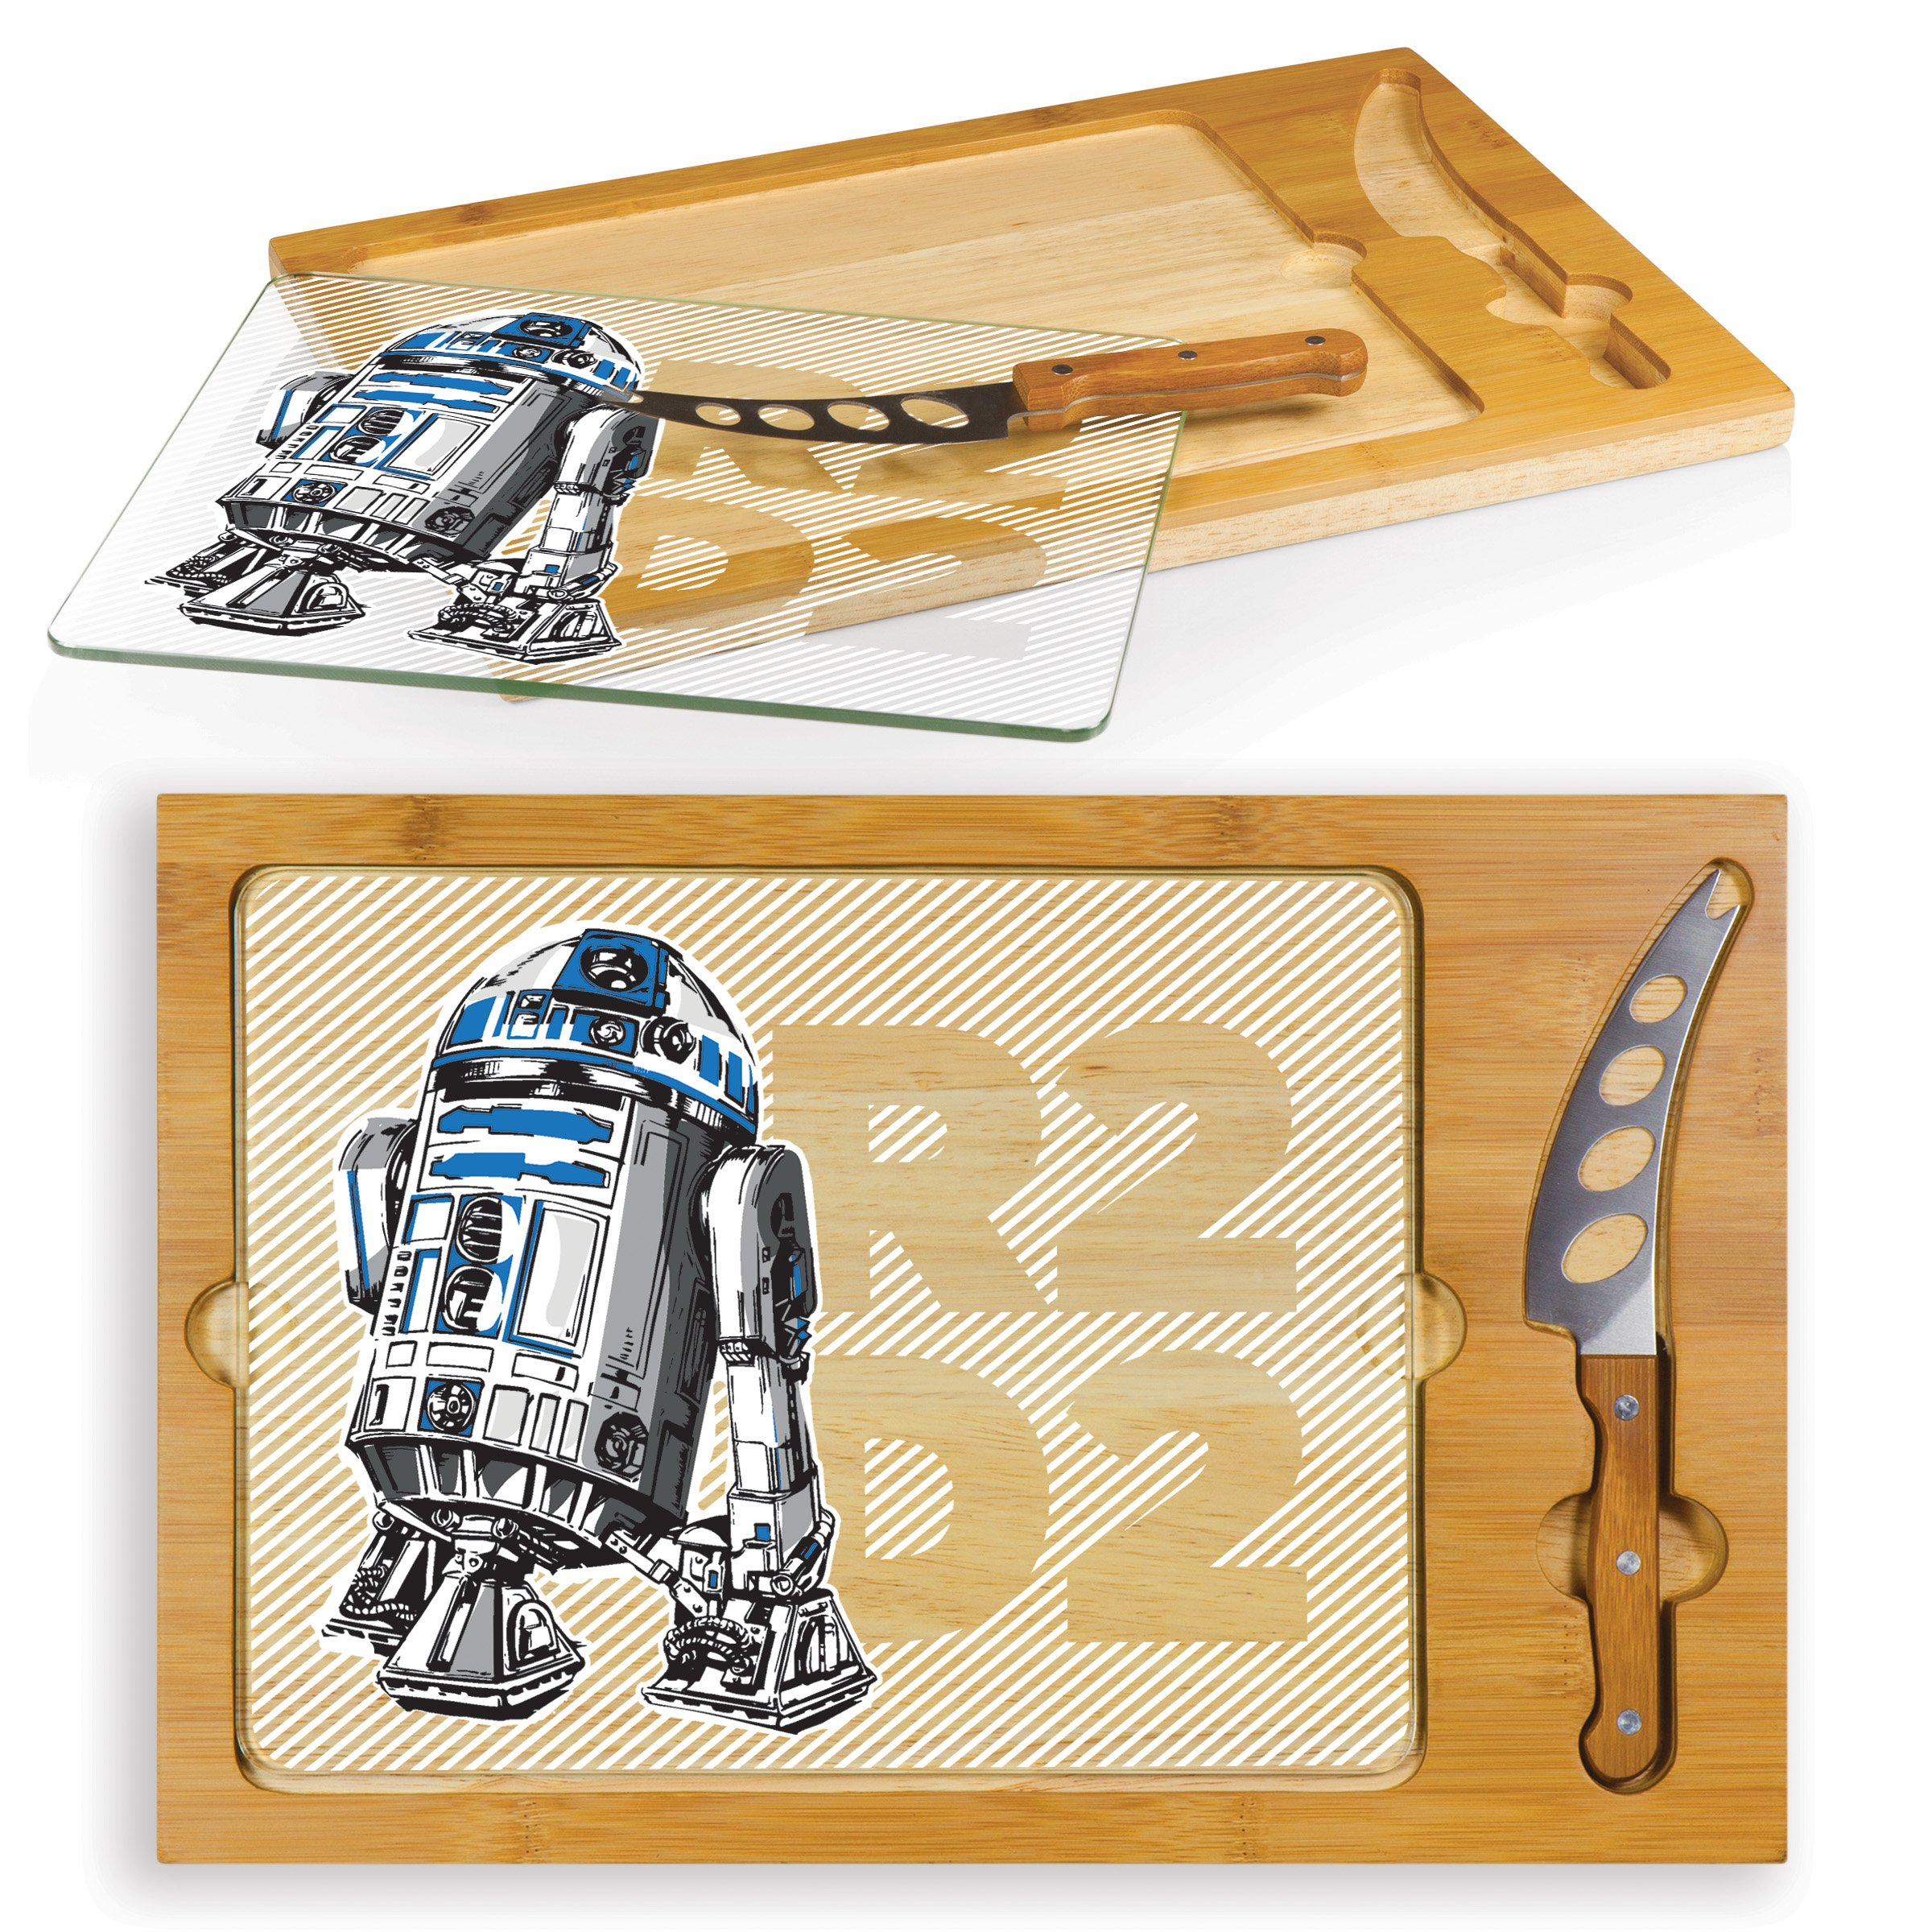 Lucas/Star Wars R2-D2 Icon 3-Piece Cheese Serving Set by PICNIC TIME (Image #2)